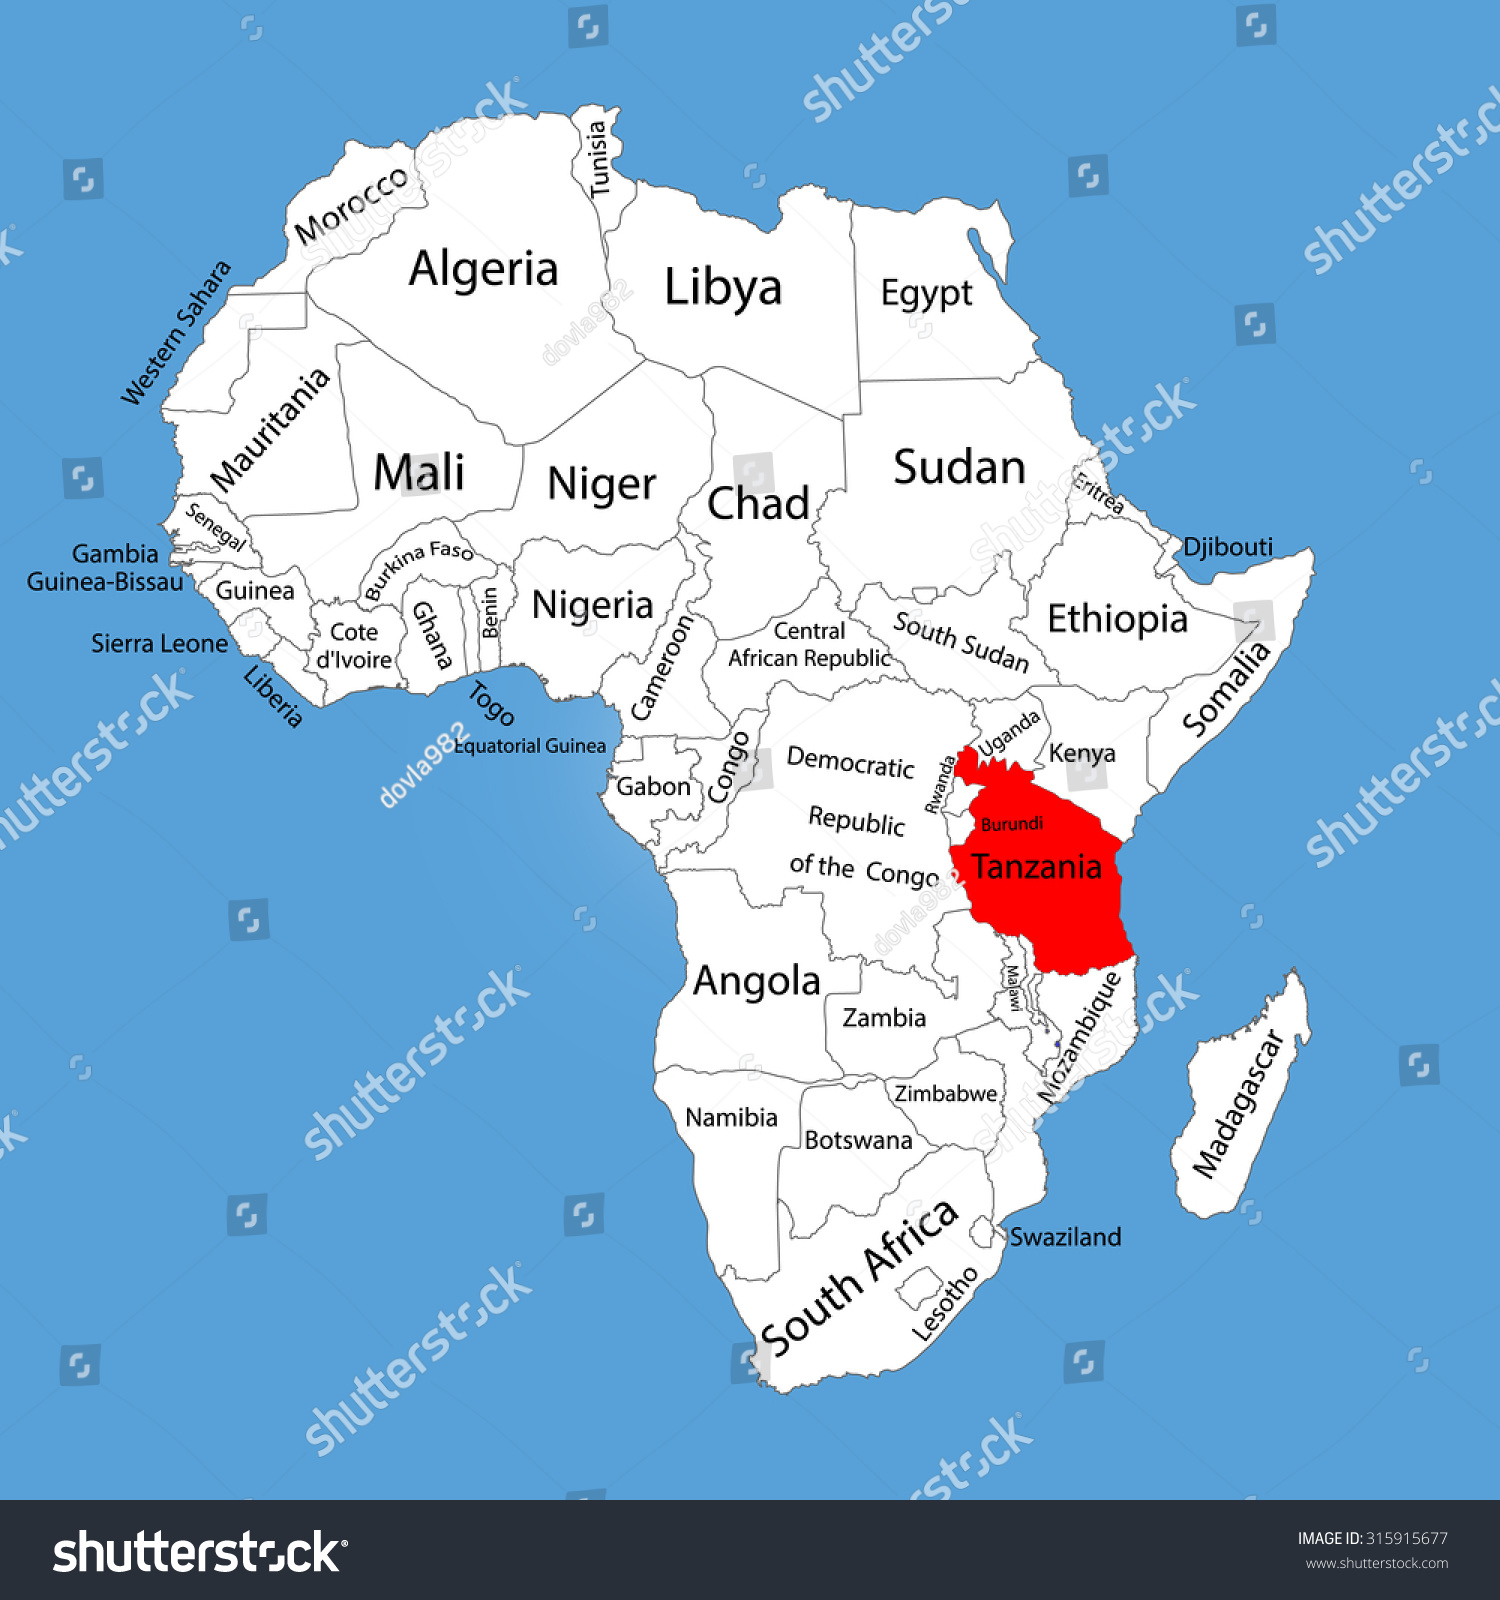 Tanzania On Africa Map.Tanzania Vector Map Silhouette Isolated On Stock Vector Royalty